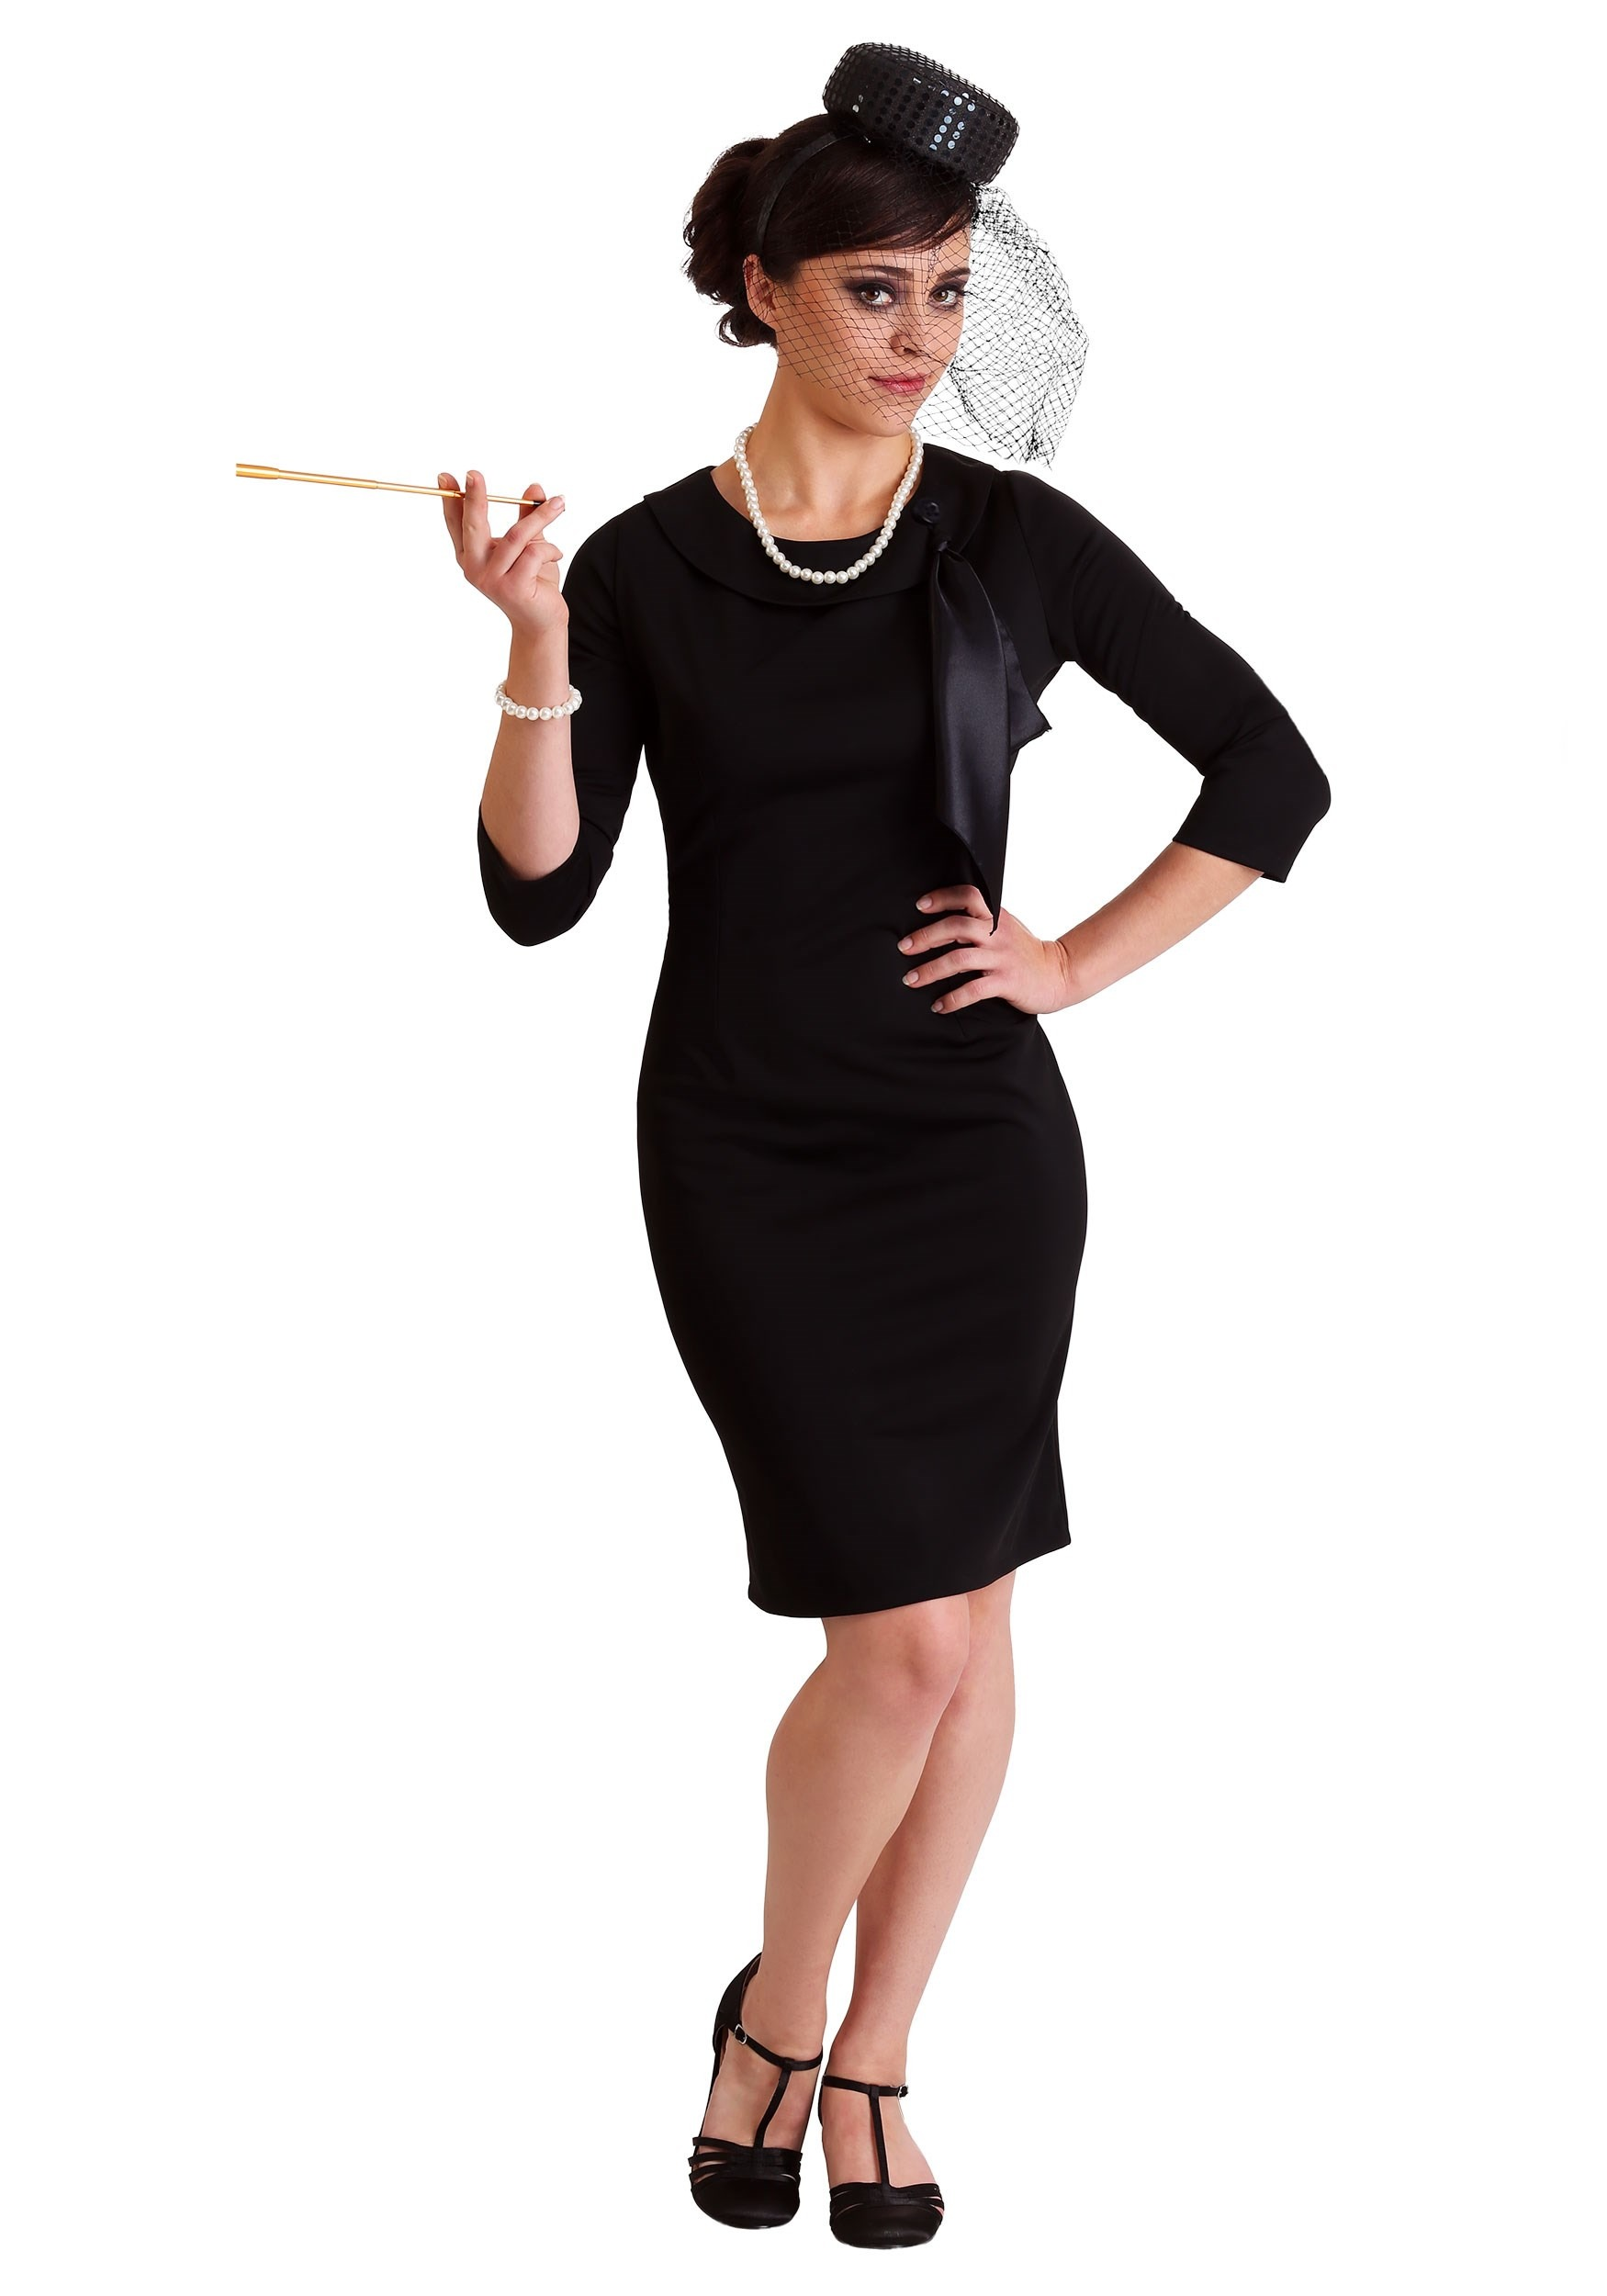 Women's Parks and Recreation Janet Snakehole Costume